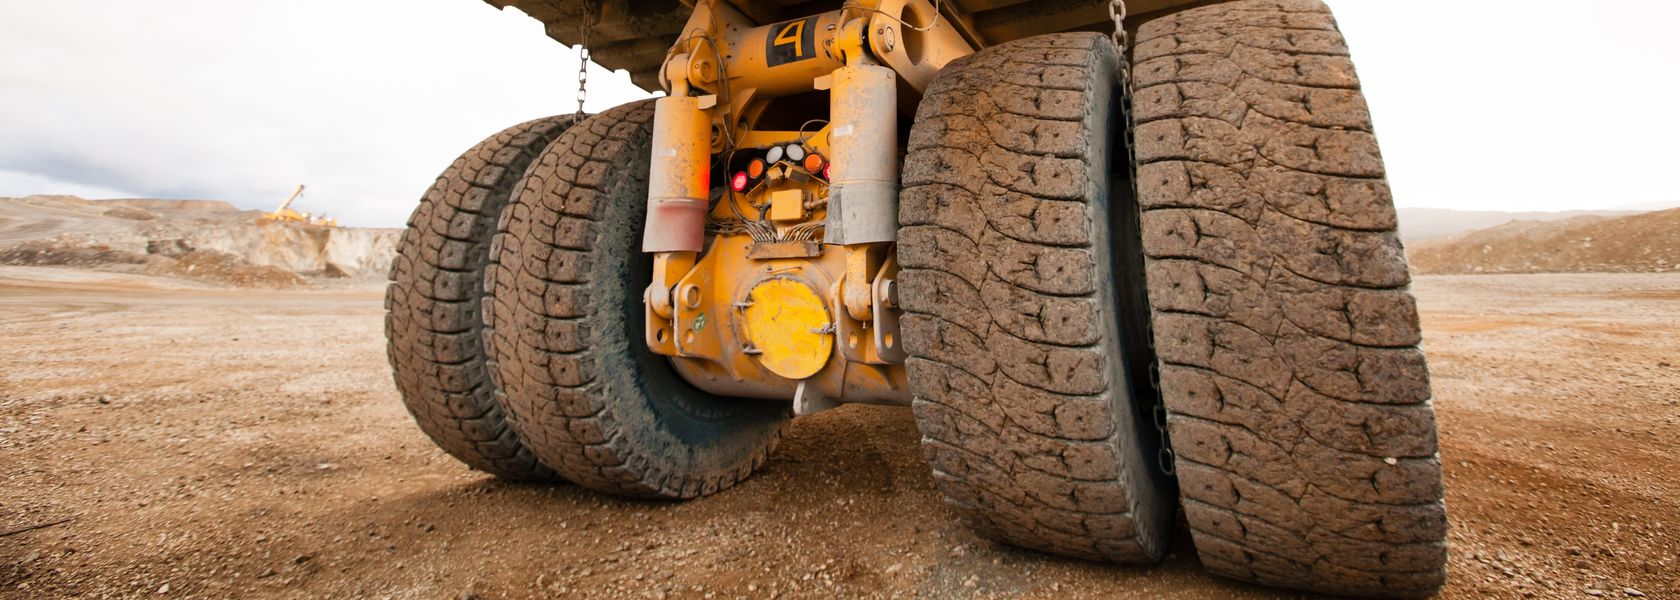 Michelin XDR 3 tyre now available in 37.00R57 size